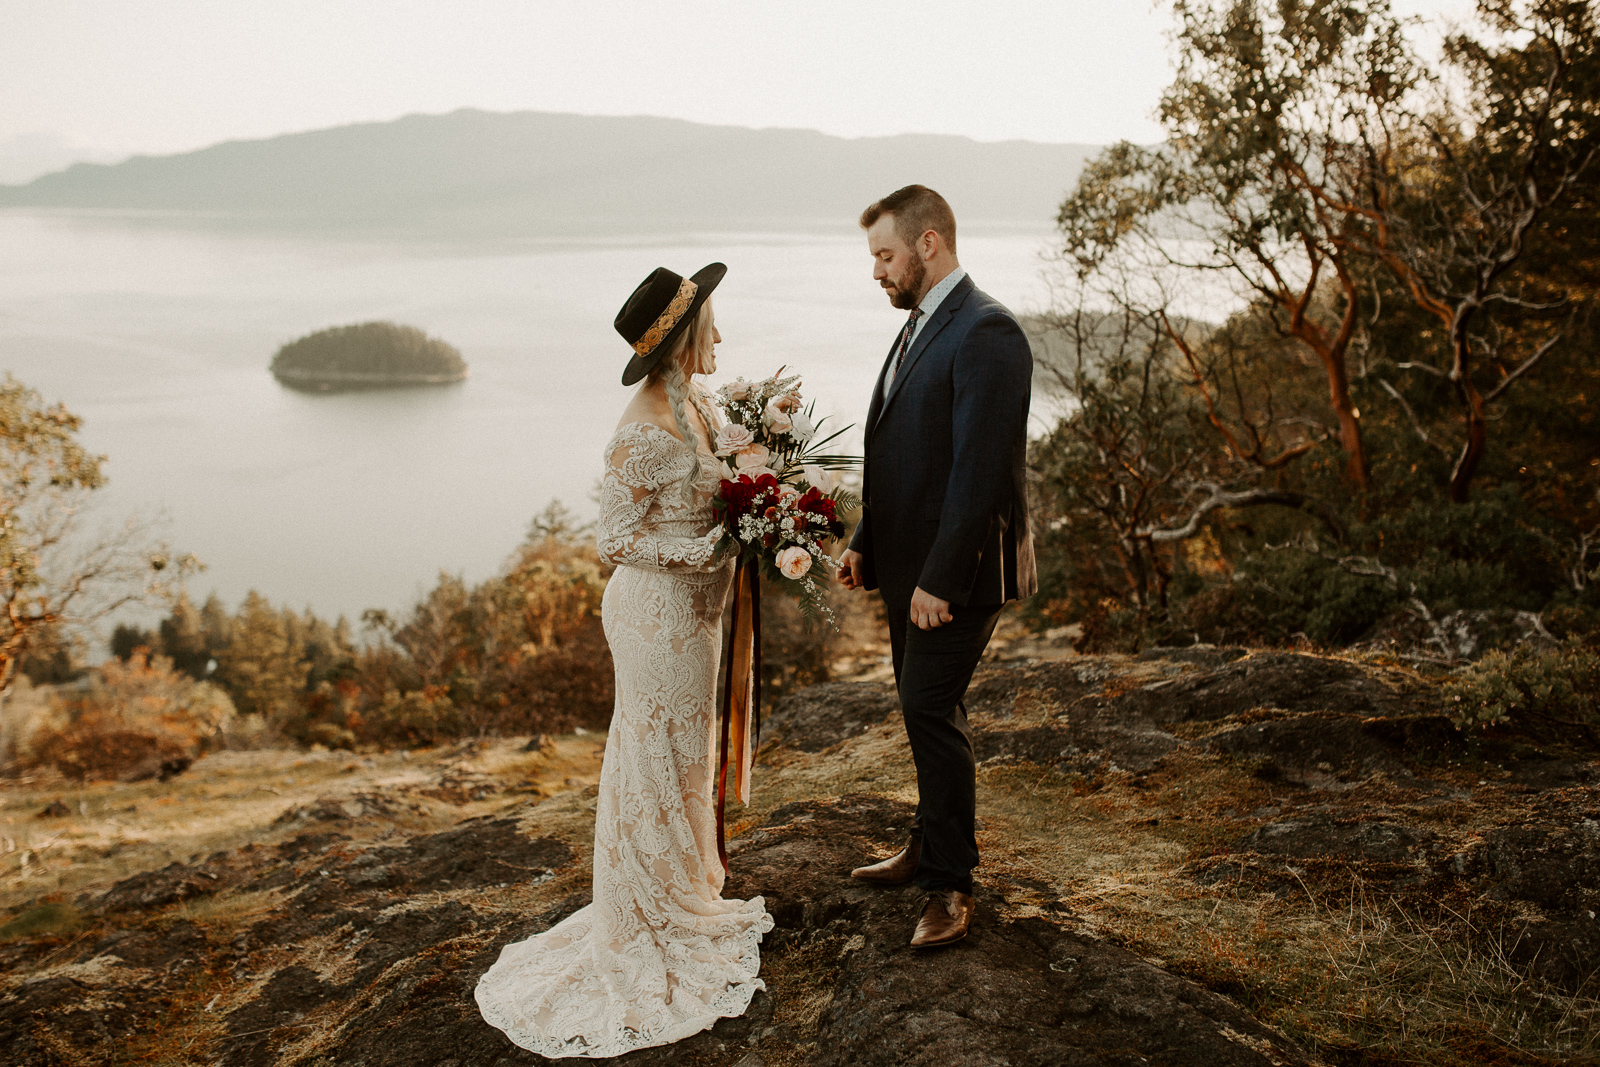 Luke Lambertson Photo_BritishColumbia_Canada_AdventurousCouple_Elopement_IMG-7963.jpg